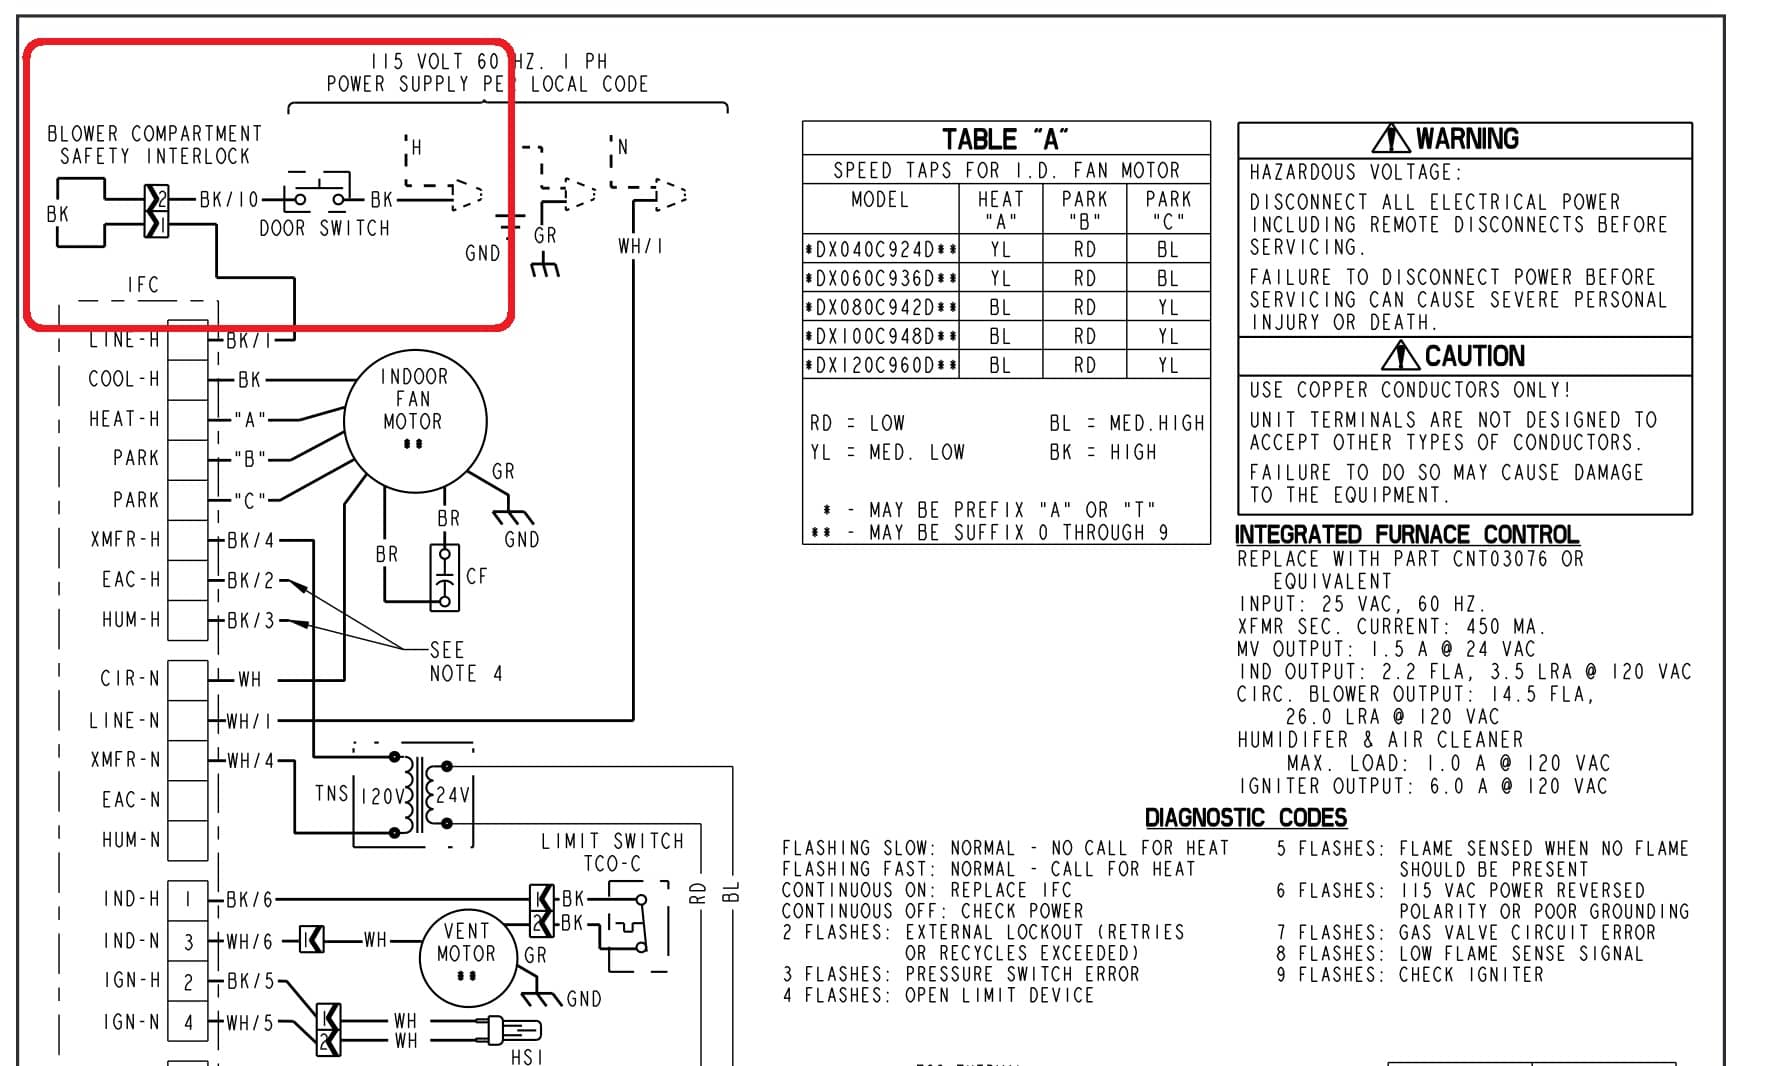 13vvl Blower Motor Resistor Located 1999 besides Furnace Blower Fan Relay Wiring Diagrams together with Wiring A Furnace Blower Motor in addition Genteq Motor Wiring Diagram also Carrier 4 Ton Vertical Water Cooled Package Unit Model 50rvs048rcc50130. on carrier blower motor replacement